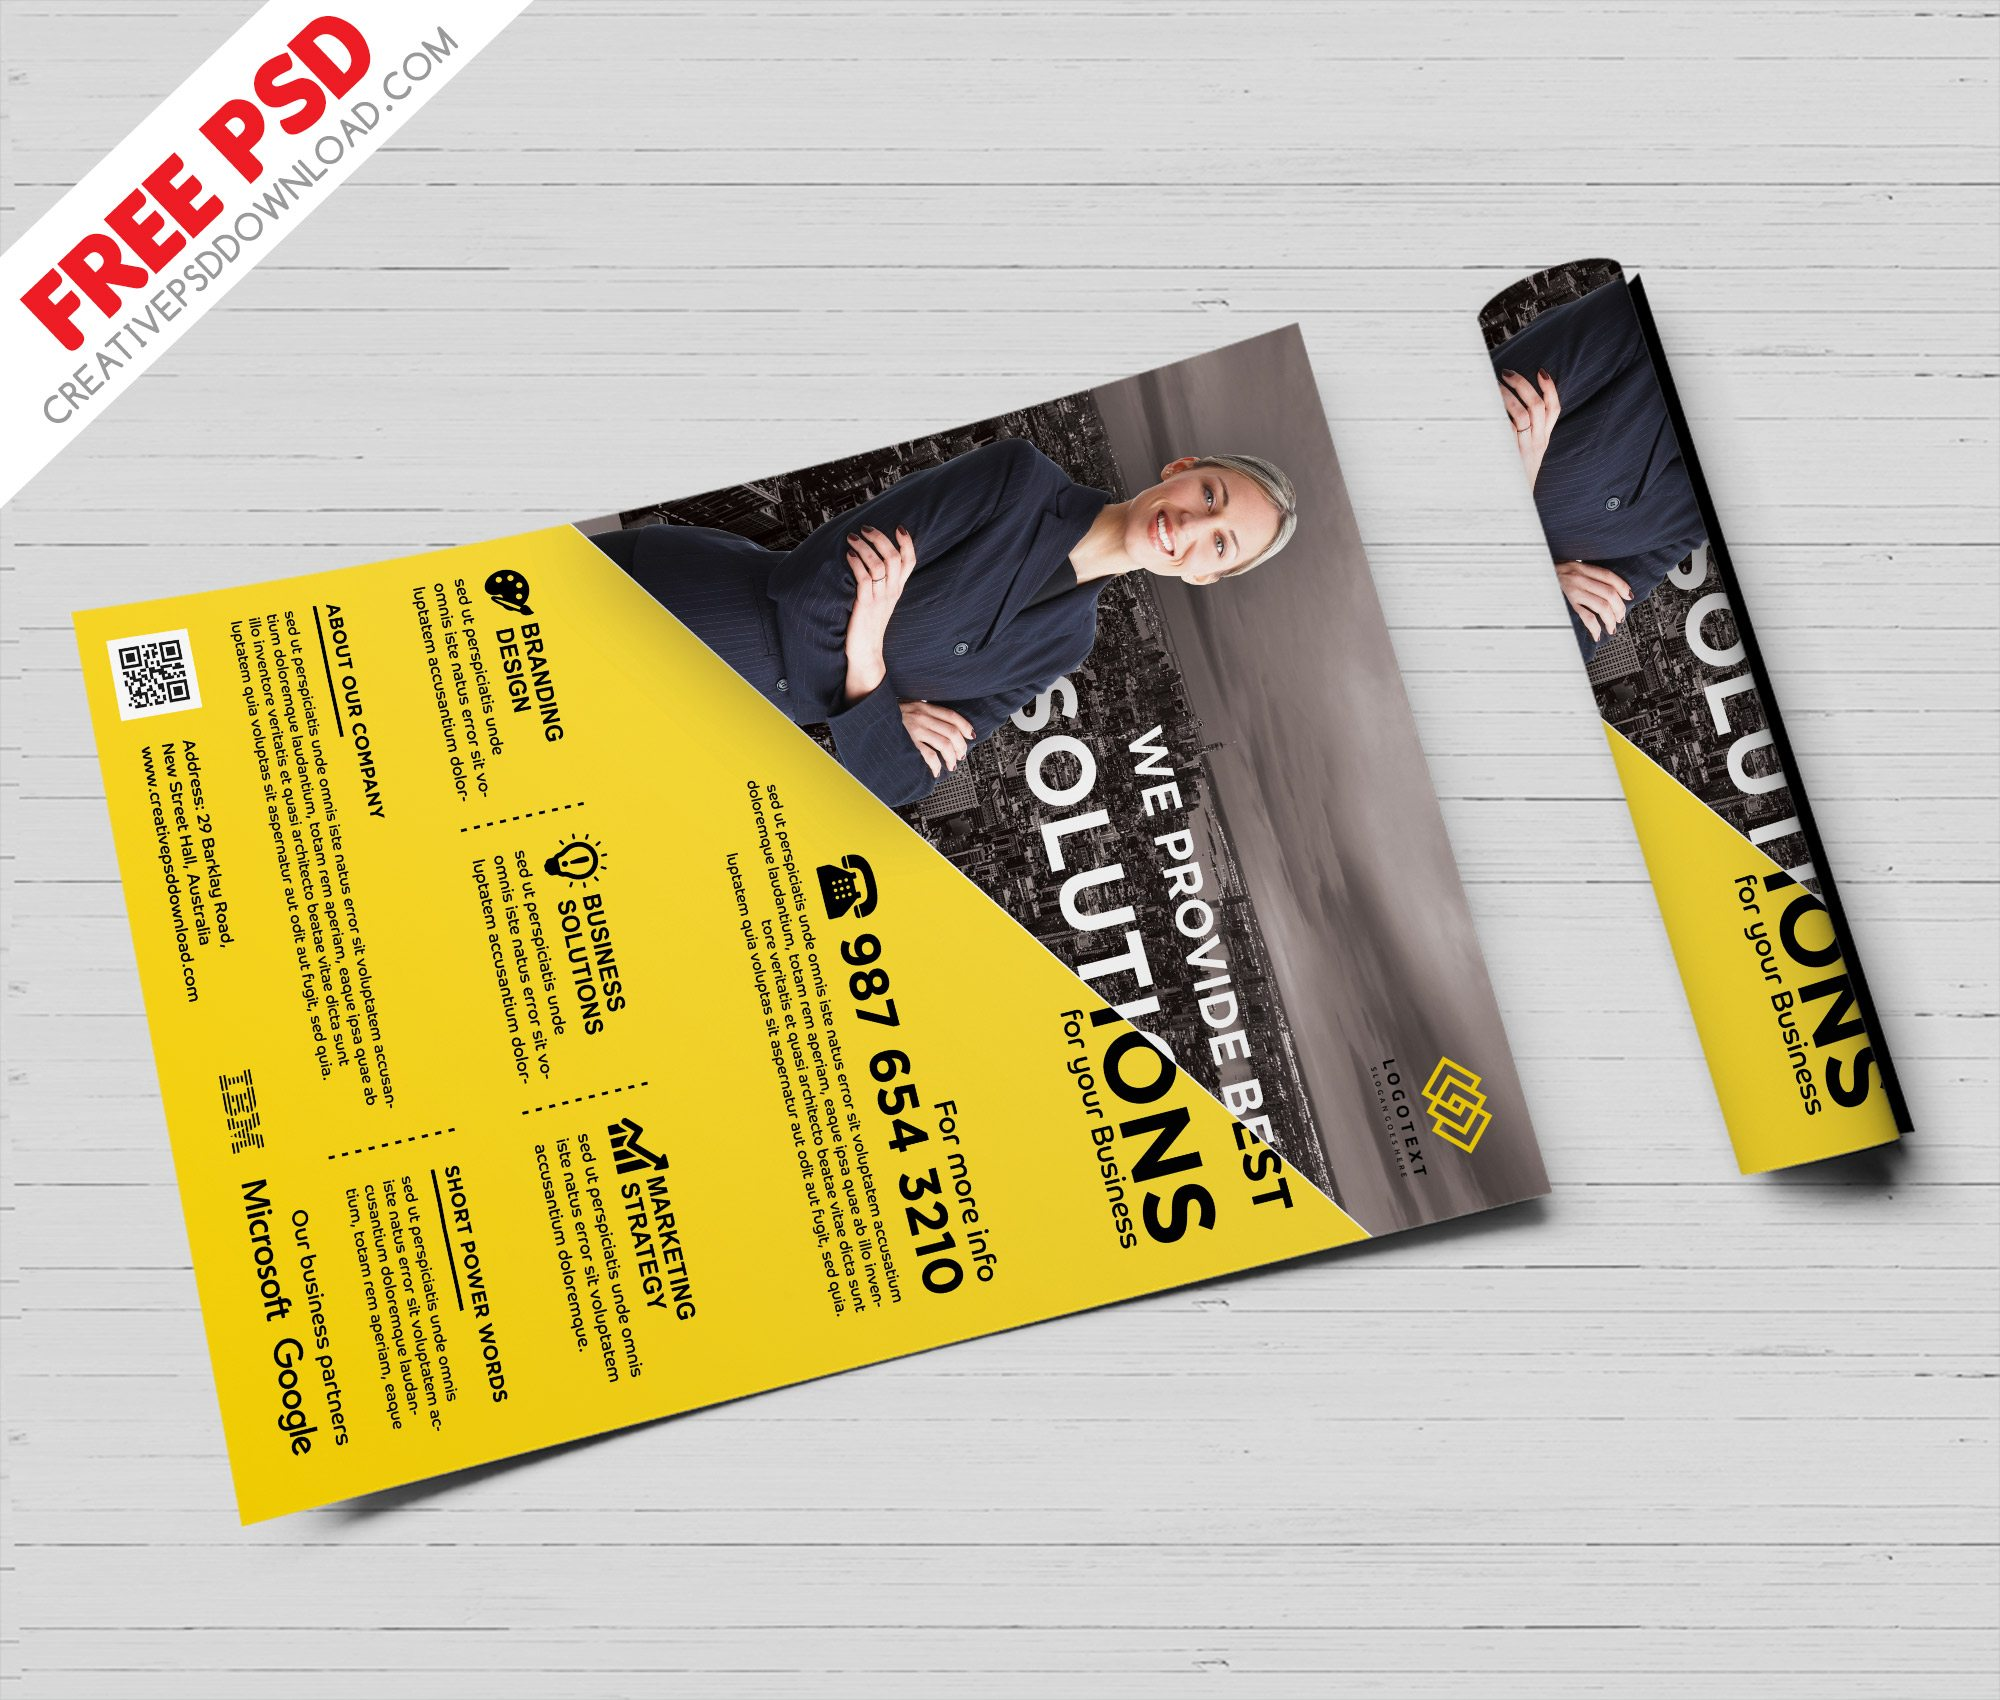 Business Promotions Flyer, Business Solutions Flyer,Business Services Flyer,Business Solutions Flyer Free PSD